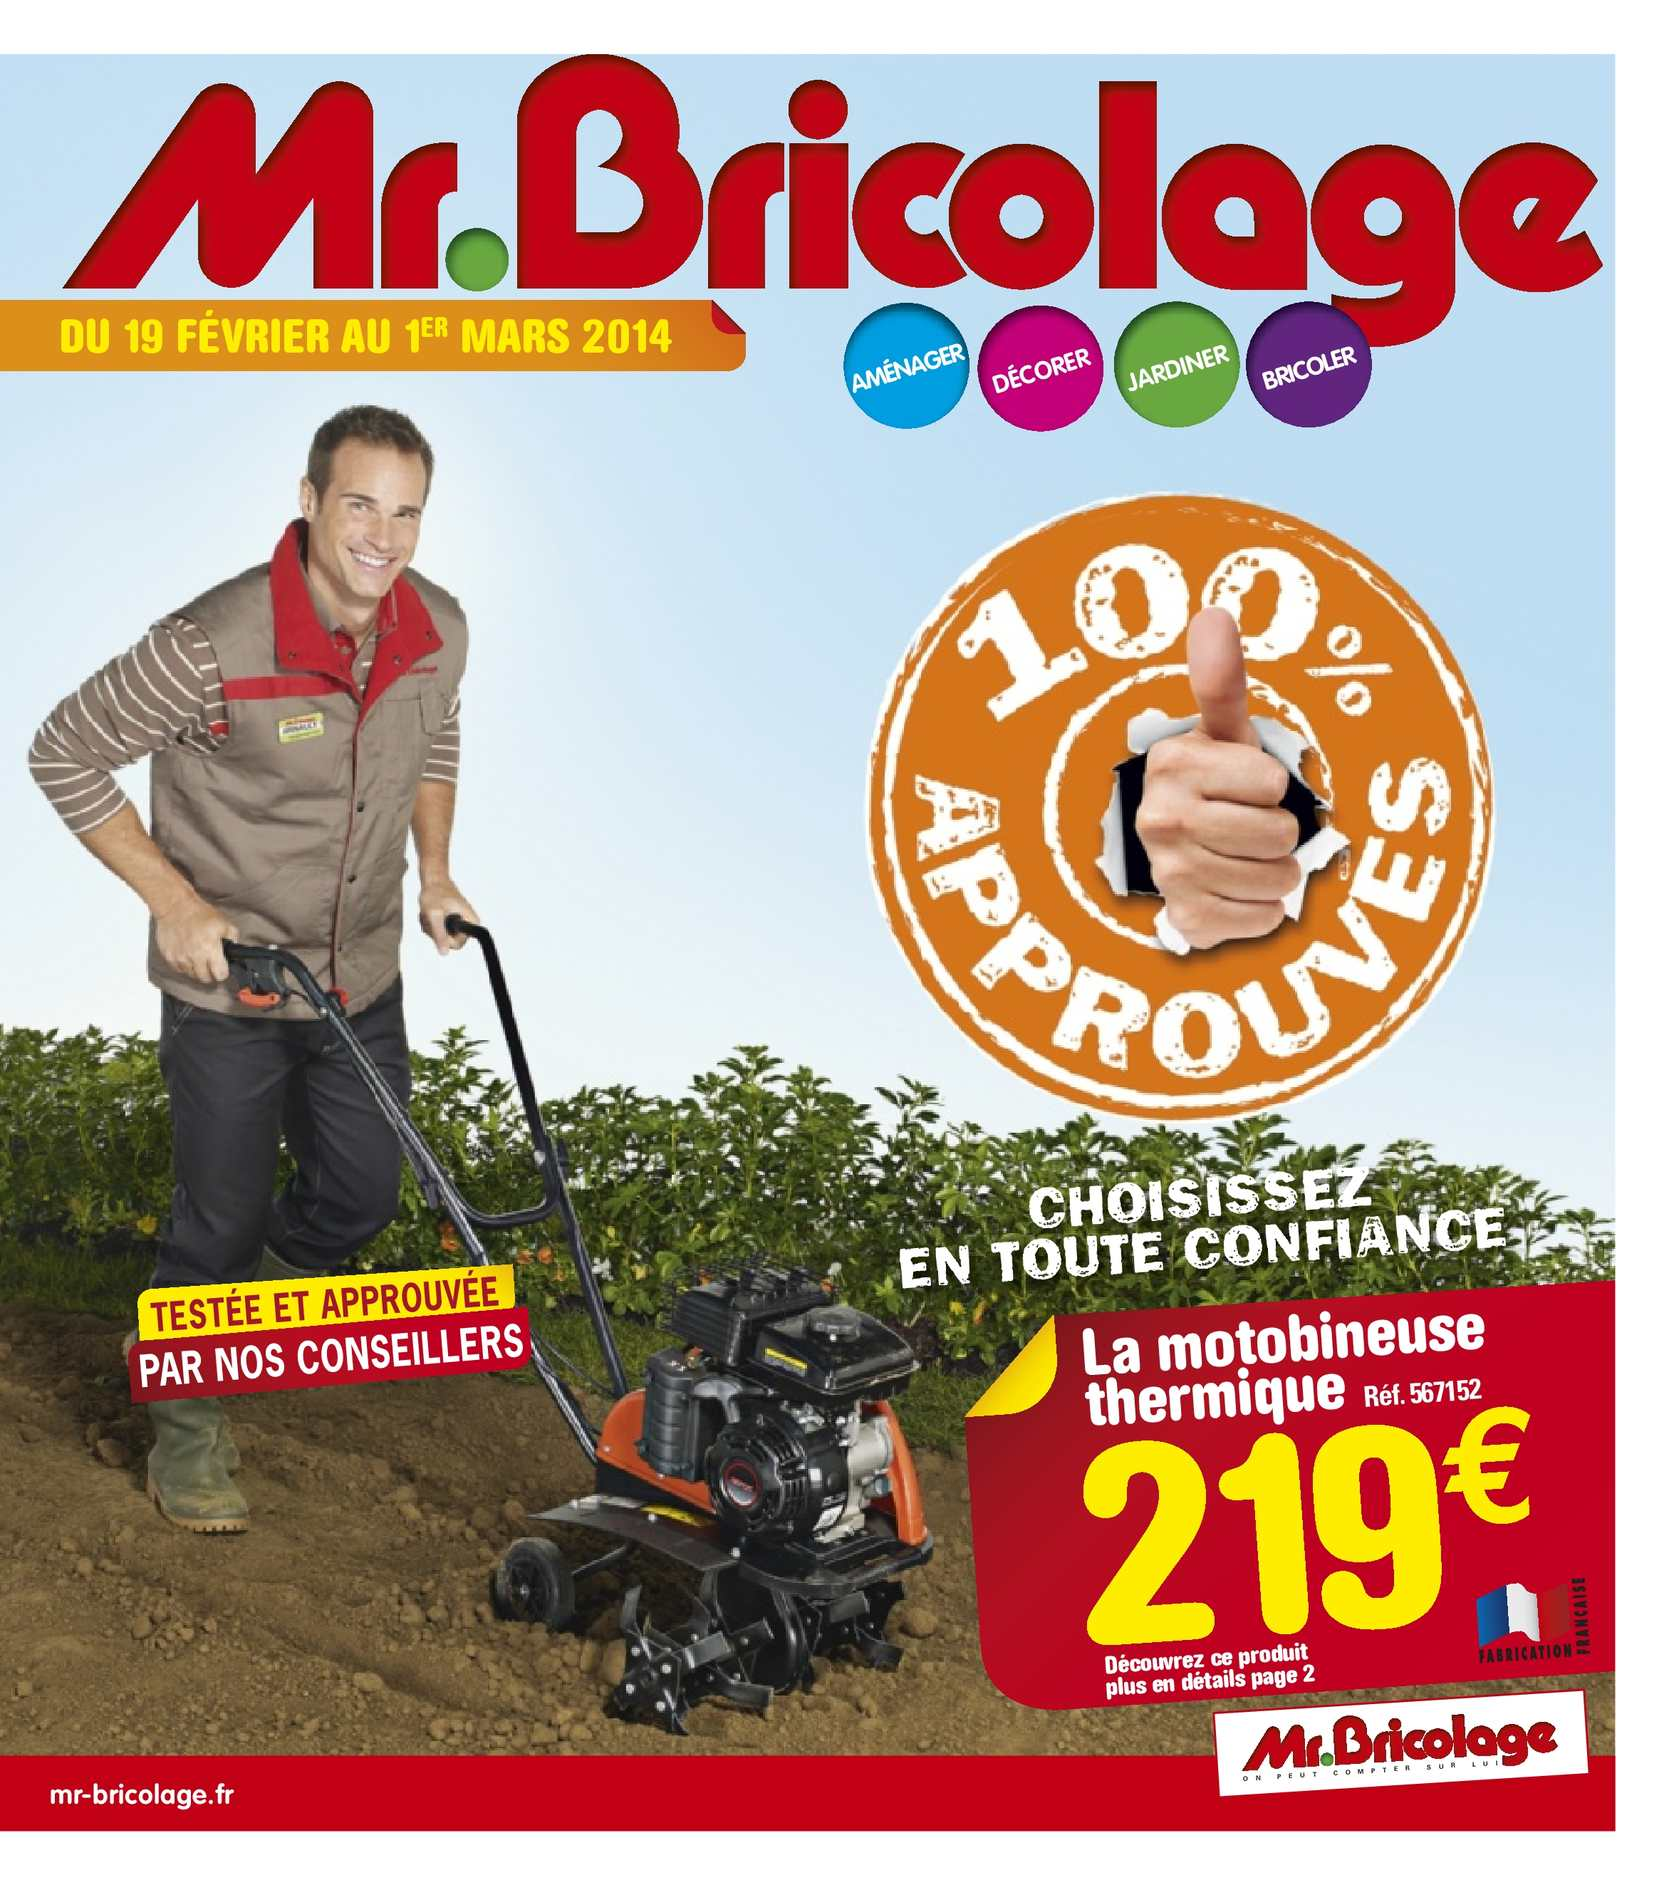 Calam o catalogue mr bricolage produits pr f r s 16 pages for Catalogue jardin 2015 mr bricolage